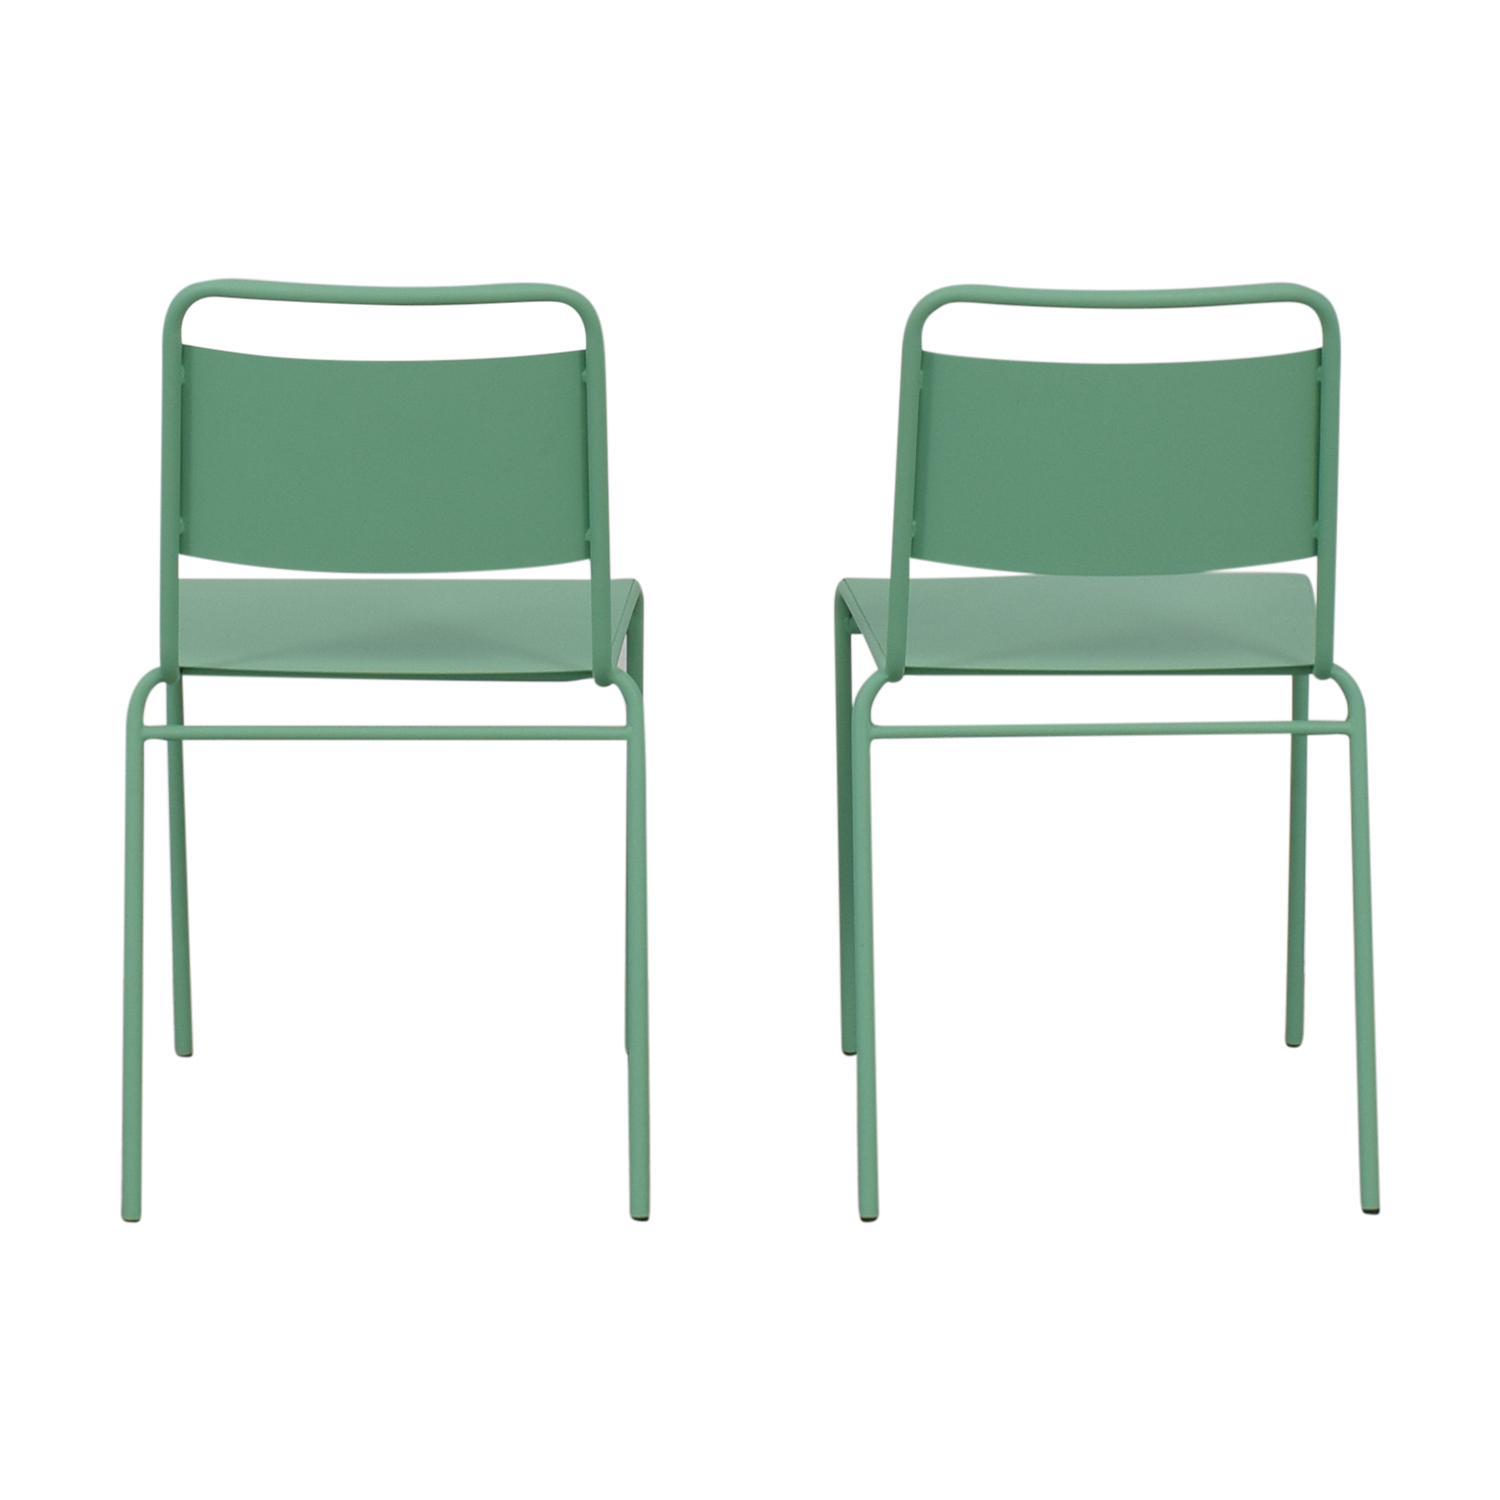 West Elm West Elm Lucinda Mint Green Dining Chairs discount